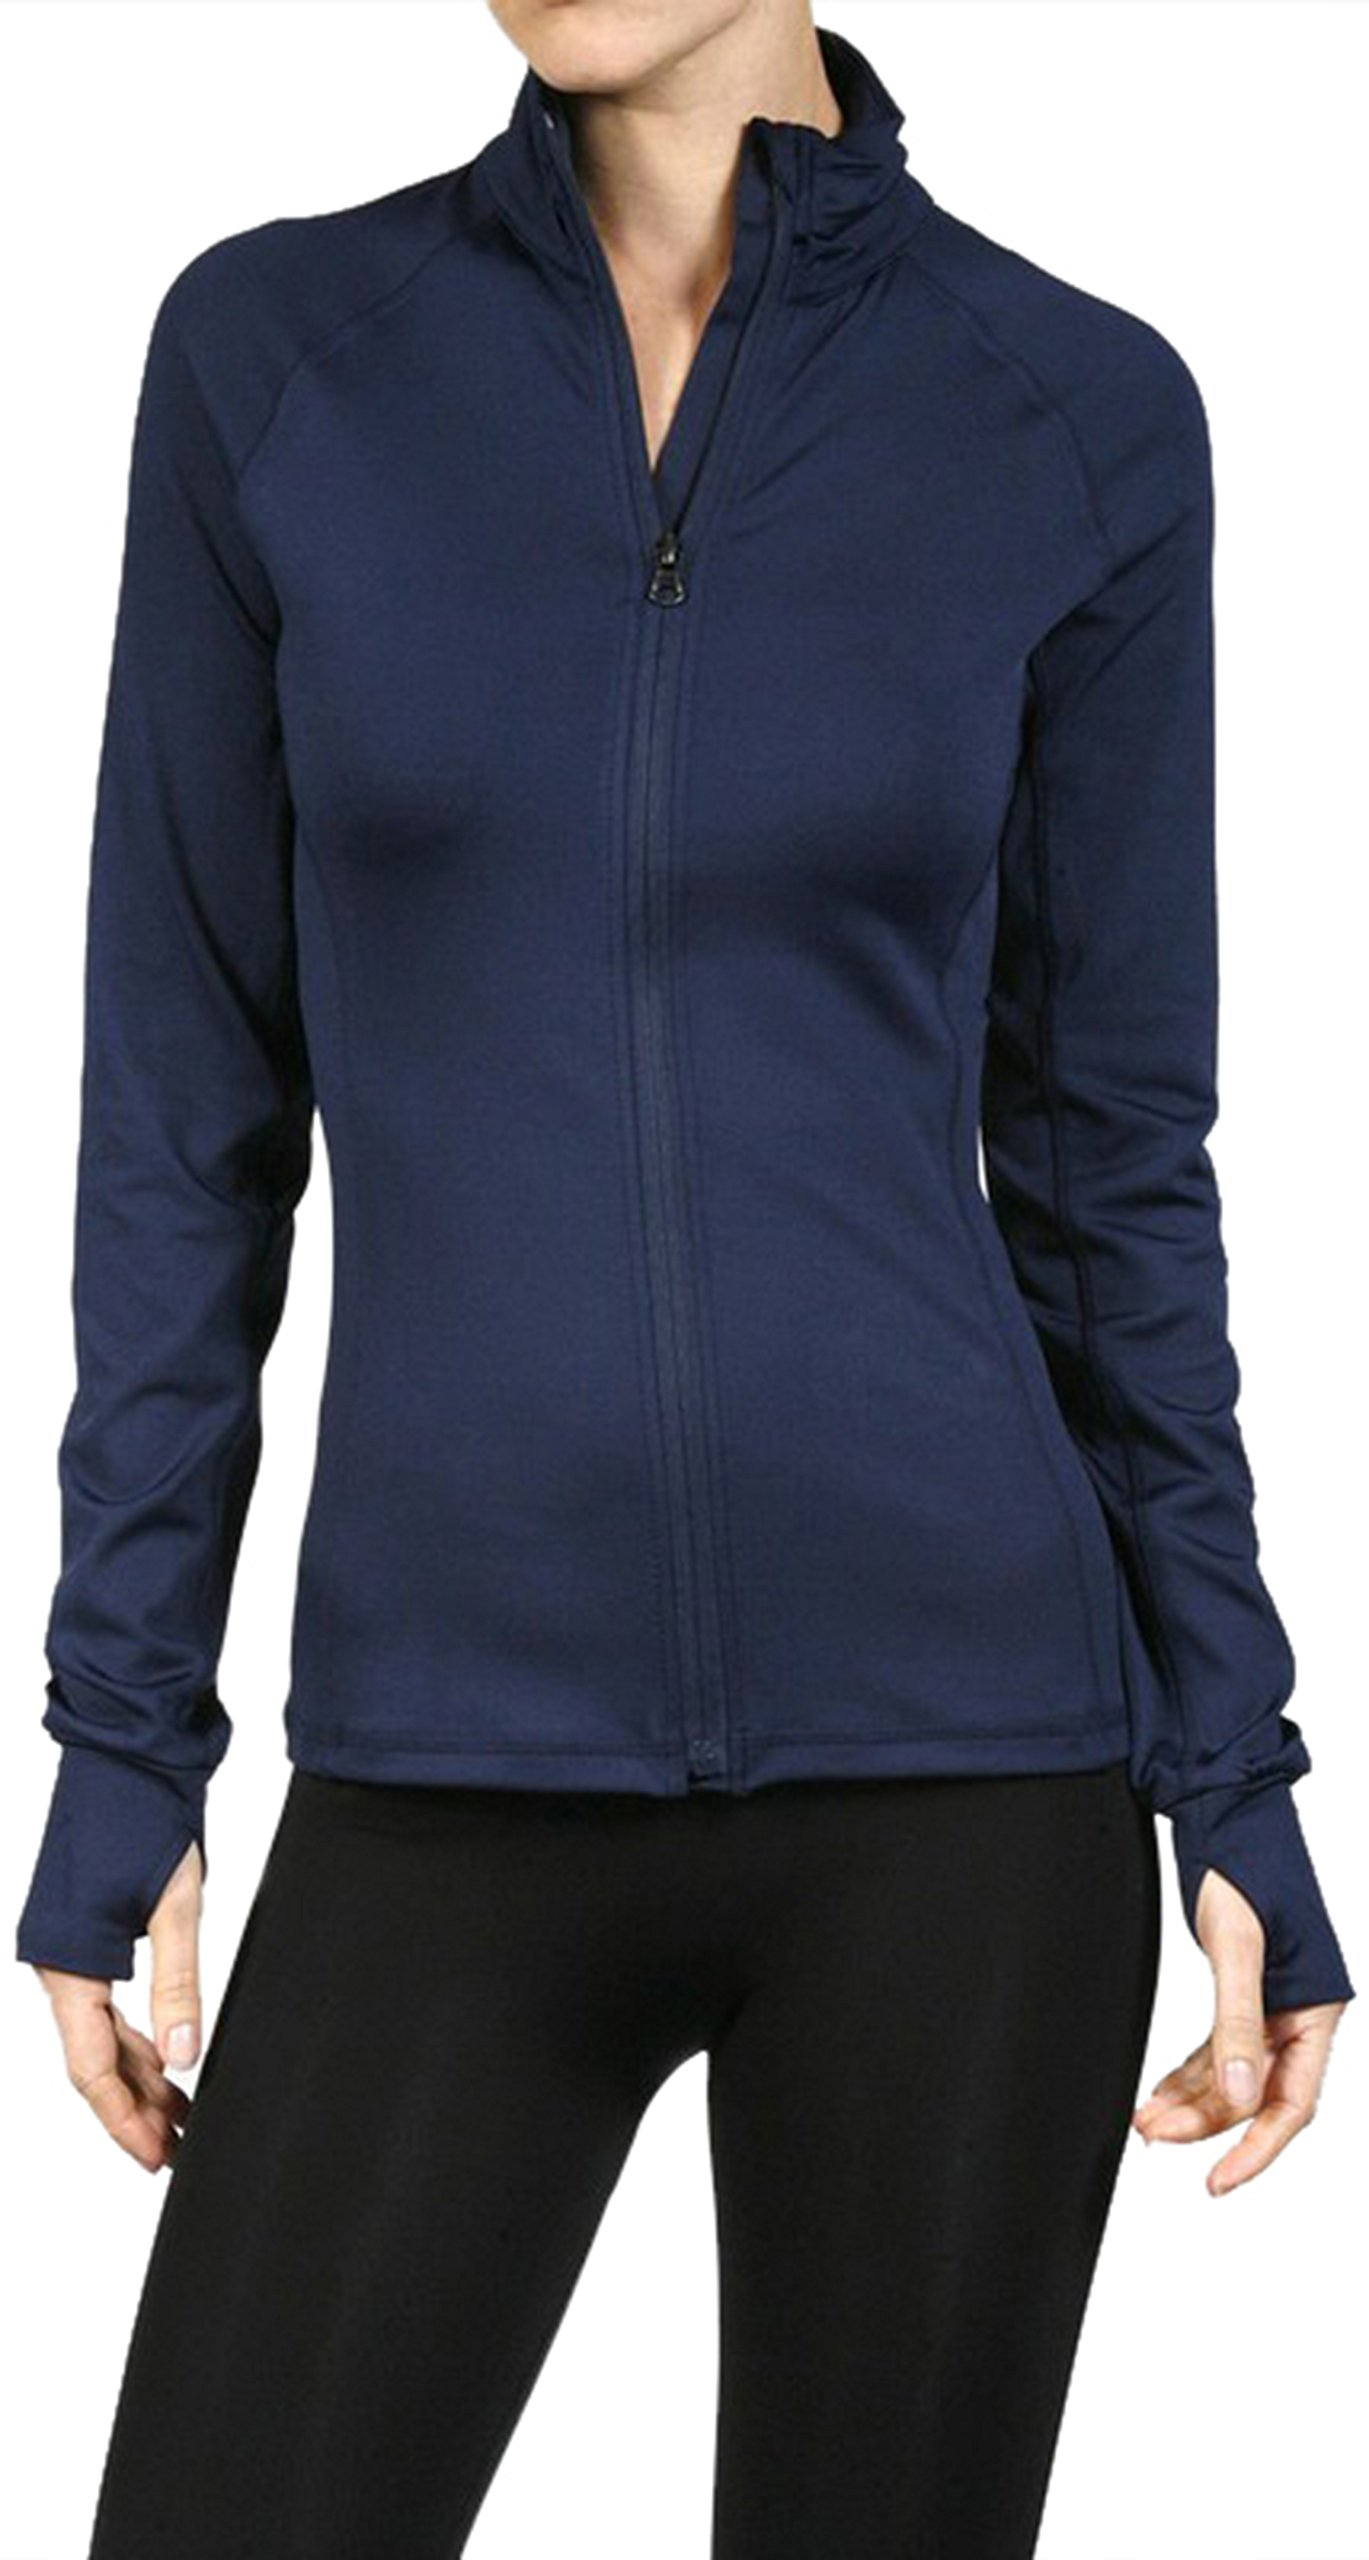 ToBeInStyle Women's Color Block L.S. Full Zip-up Track Jacket - Navy - Large by ToBeInStyle